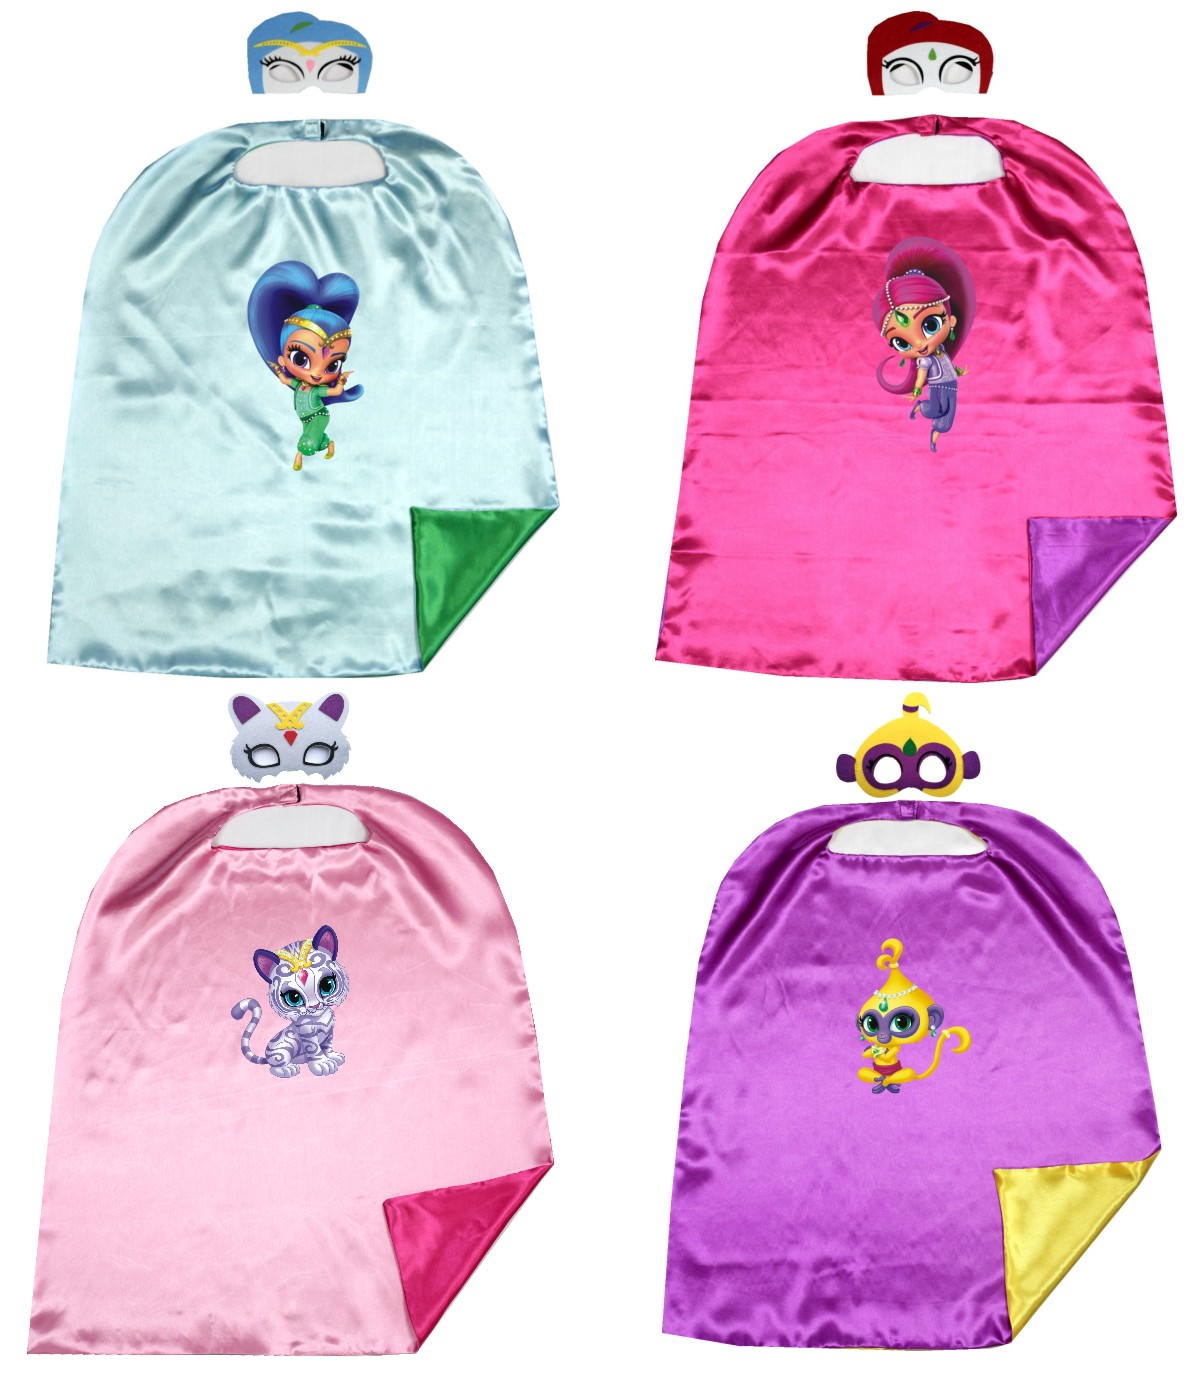 70 * 80cm 2layer shimmer & shine Capes bijpassende maskers BirthdayParty Favor Inspired Dress Up Capes + Masks